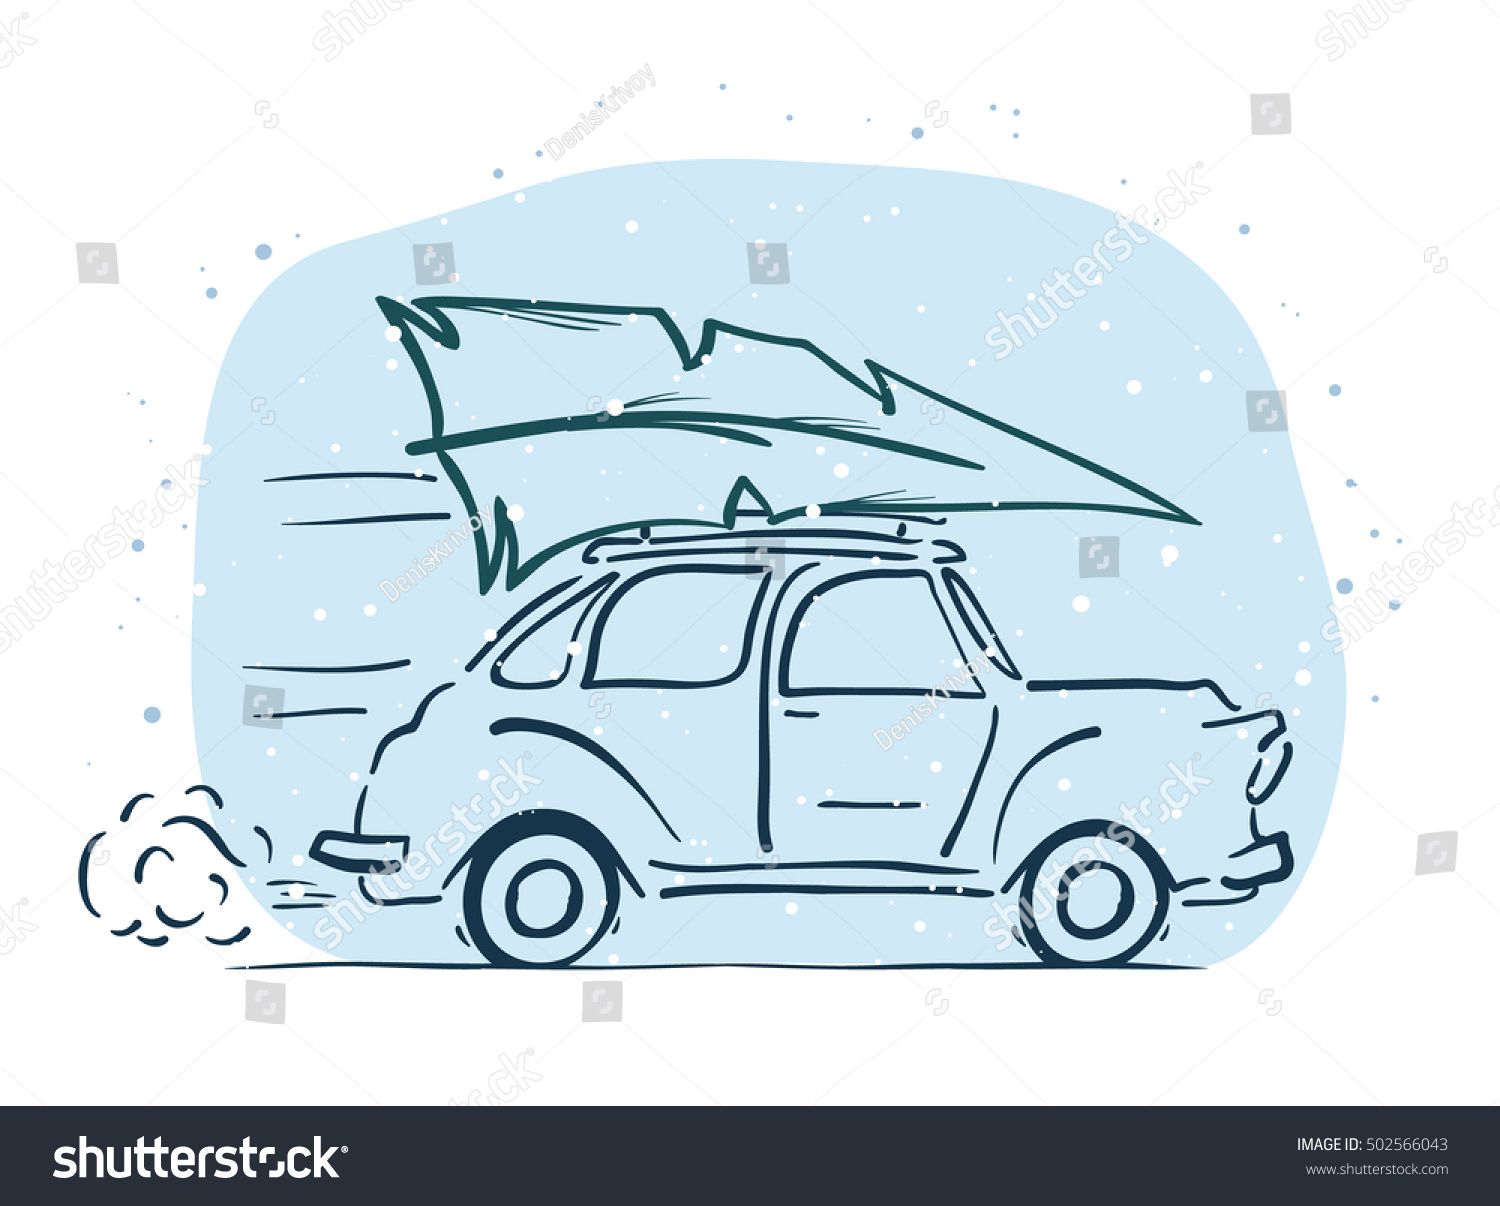 Vector Illustration Handdrawing Moving Retro Car Stock Vector ...